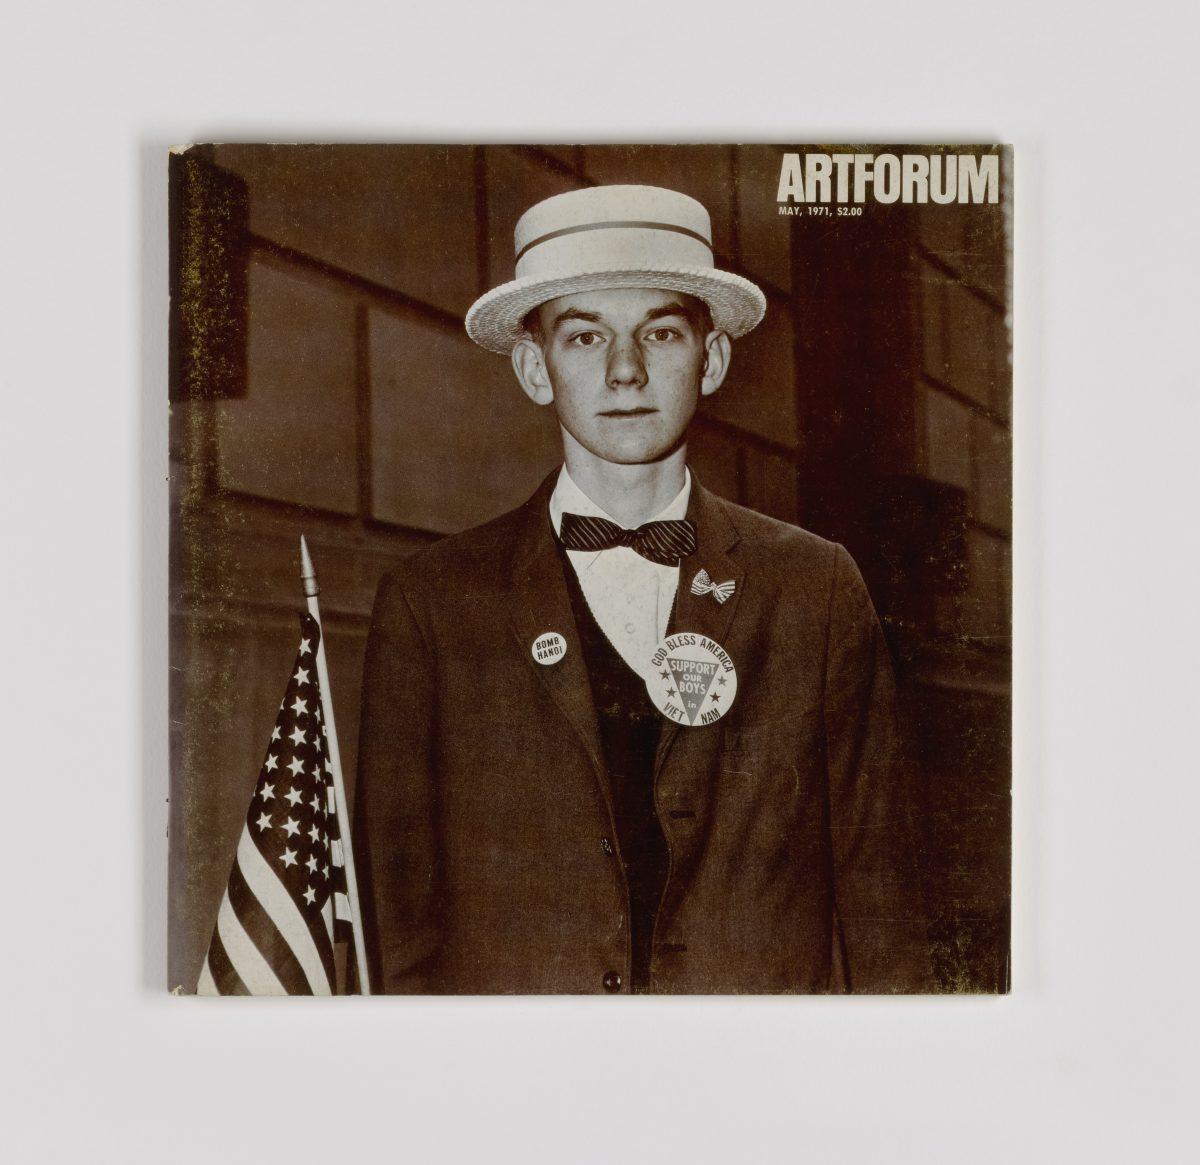 Diane Arbus, Boy with a straw hat waiting to march in a pro-war parade, cover of Artforum, May 1971